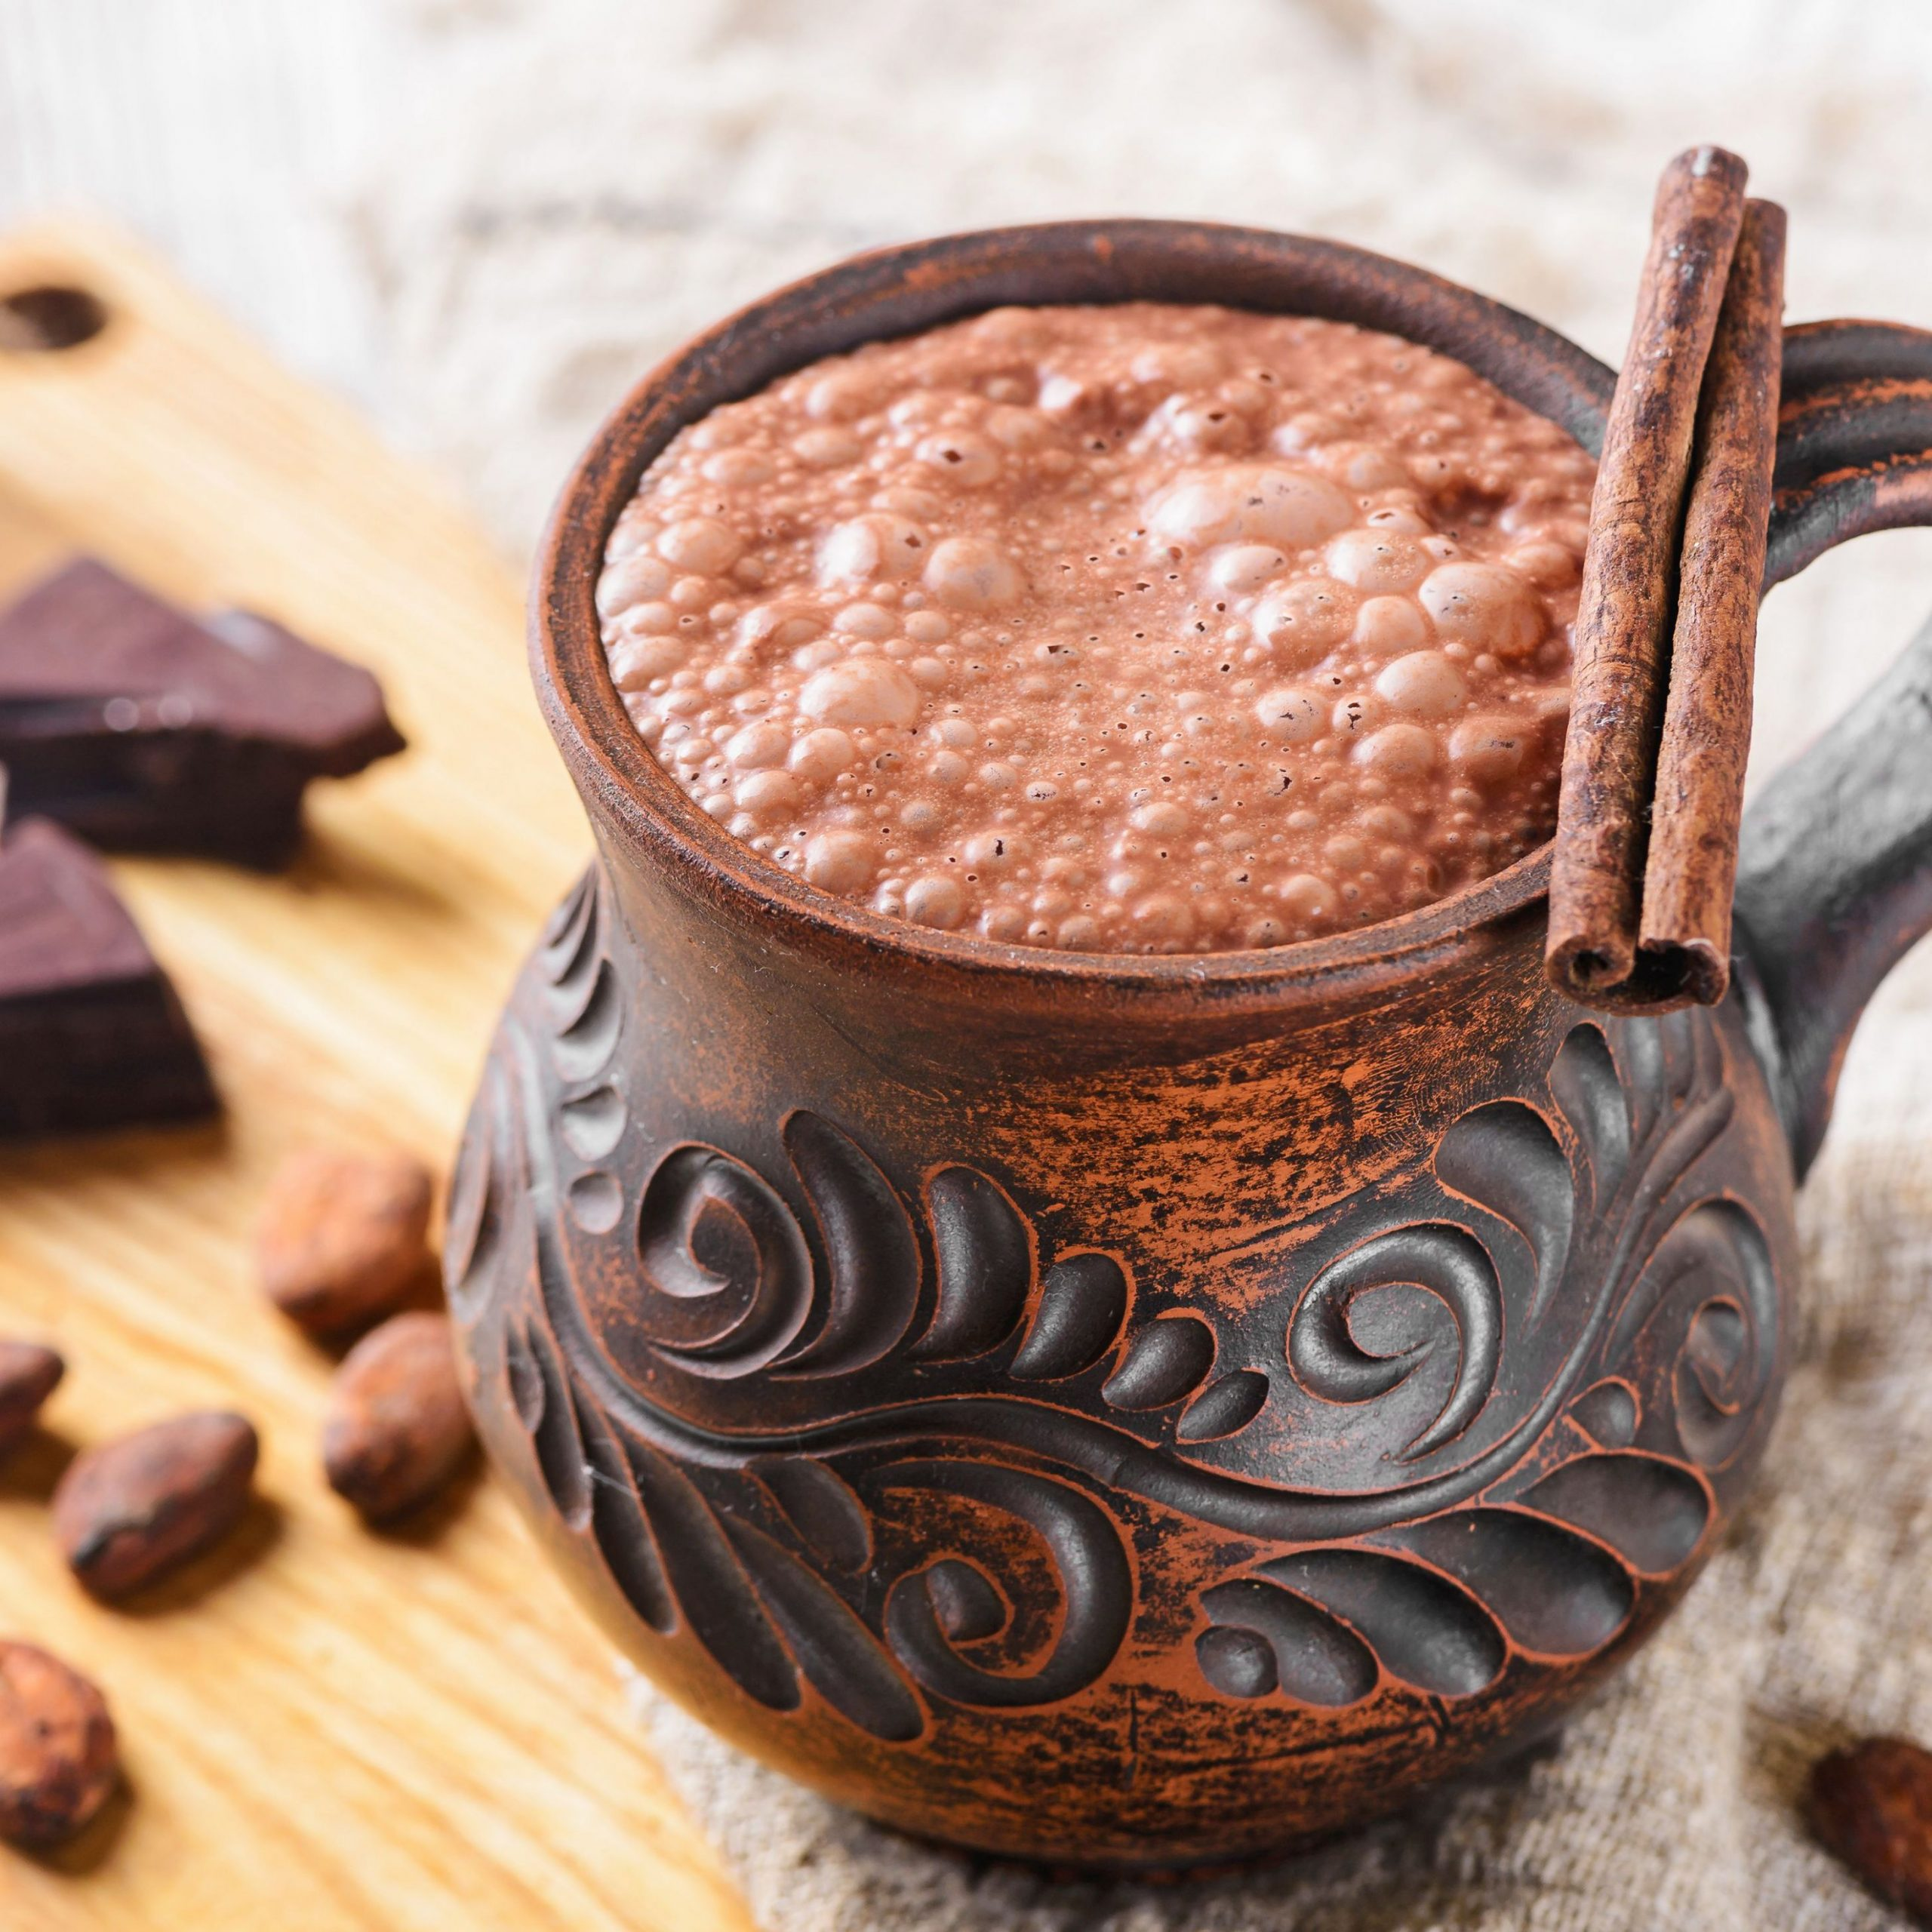 Chocolate Caliente: Authentic Mexican Hot Chocolate - Recipes Using Chocolate Milk